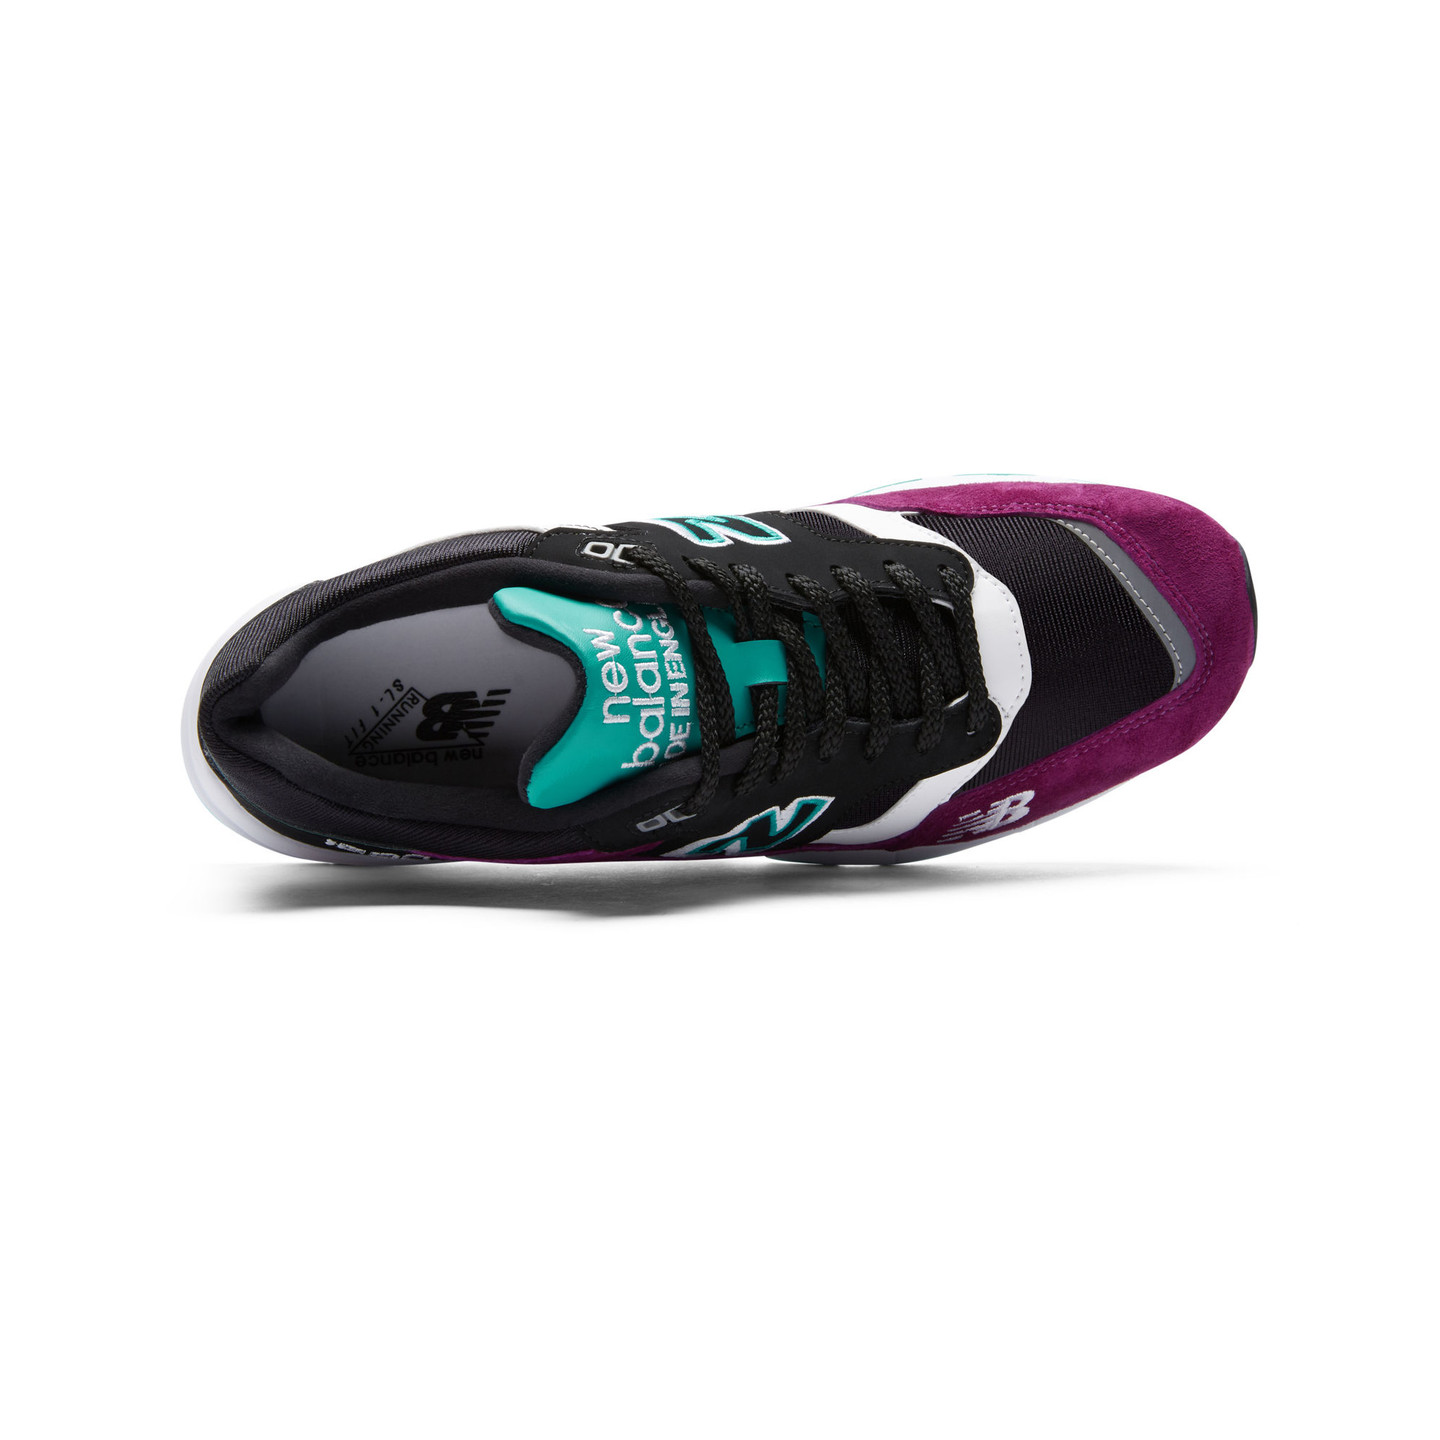 New Balance M1530 KPT - Made in England Black / Purple / Turquoise M1530KPT